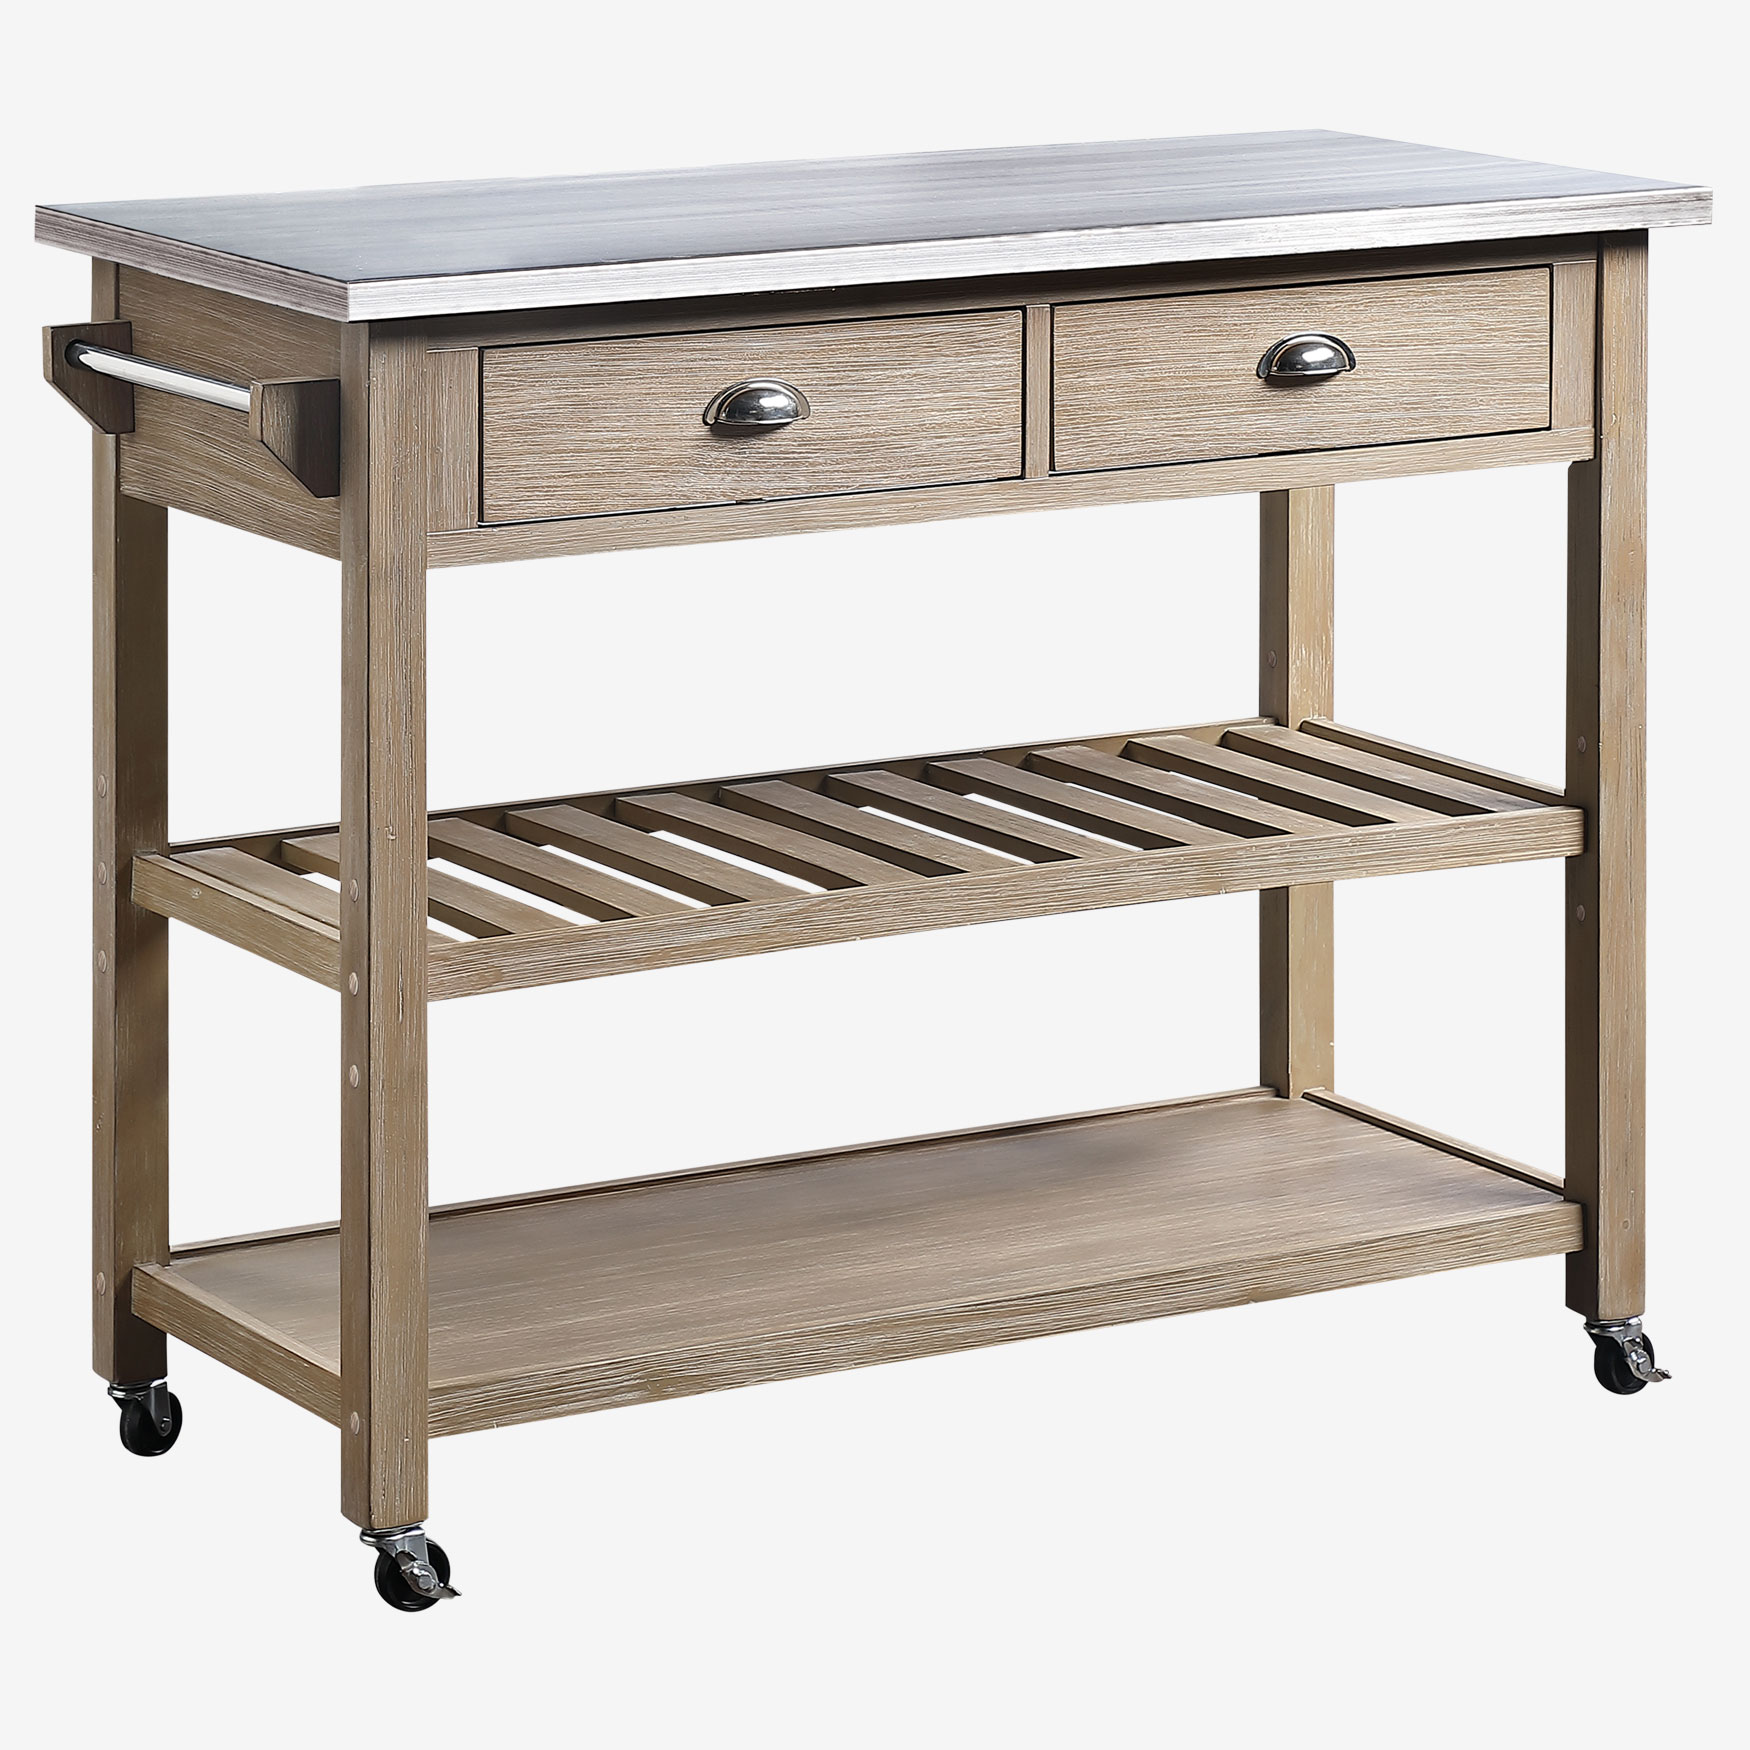 Alex Kitchen Island Cart| Kitchen Carts & Islands | Brylane Home